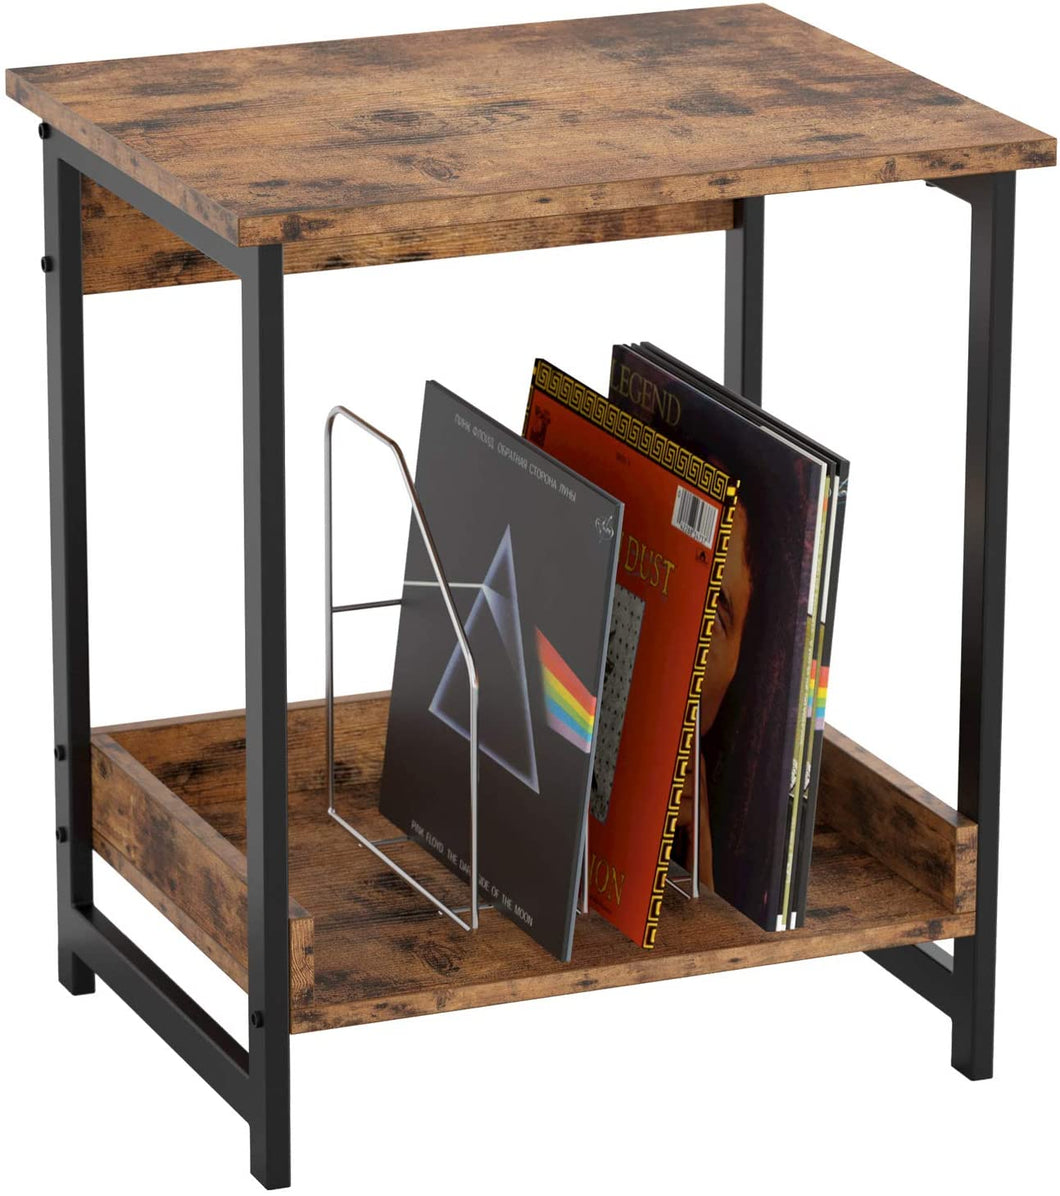 Night Stand Side Table with 2-Tier Storage Shelf